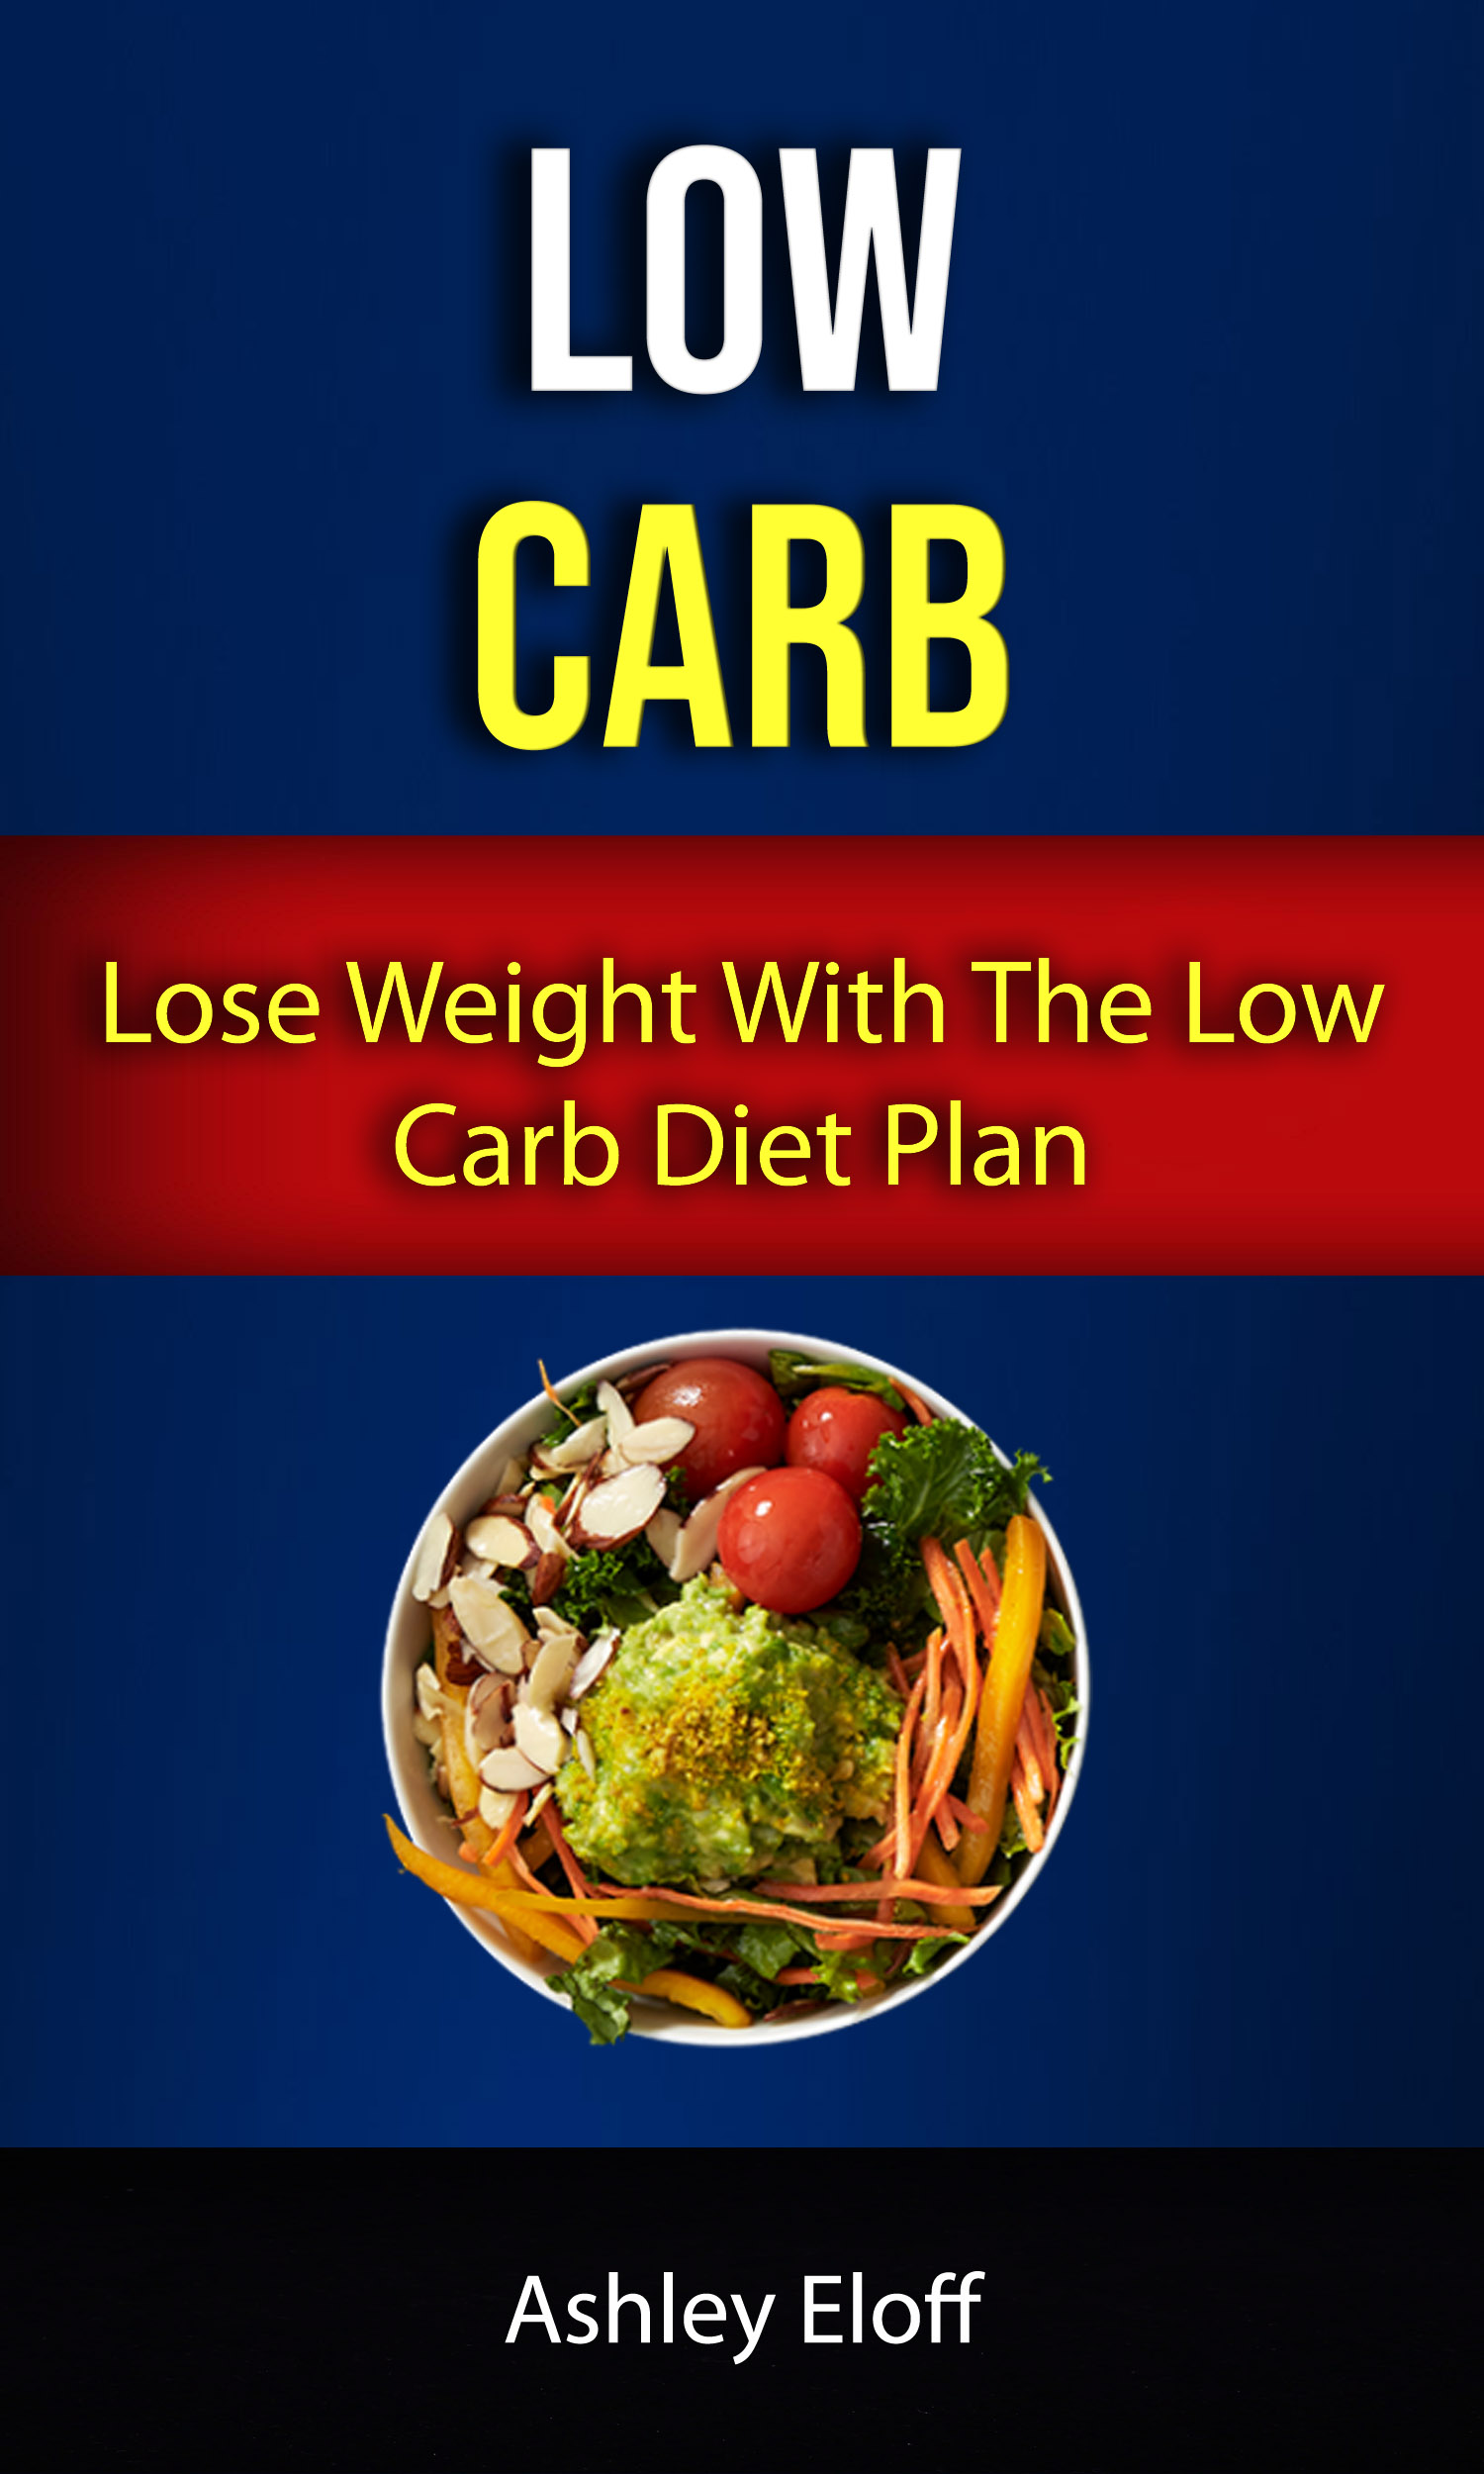 Babelcube - Low carb: lose weight with the low carb diet plan